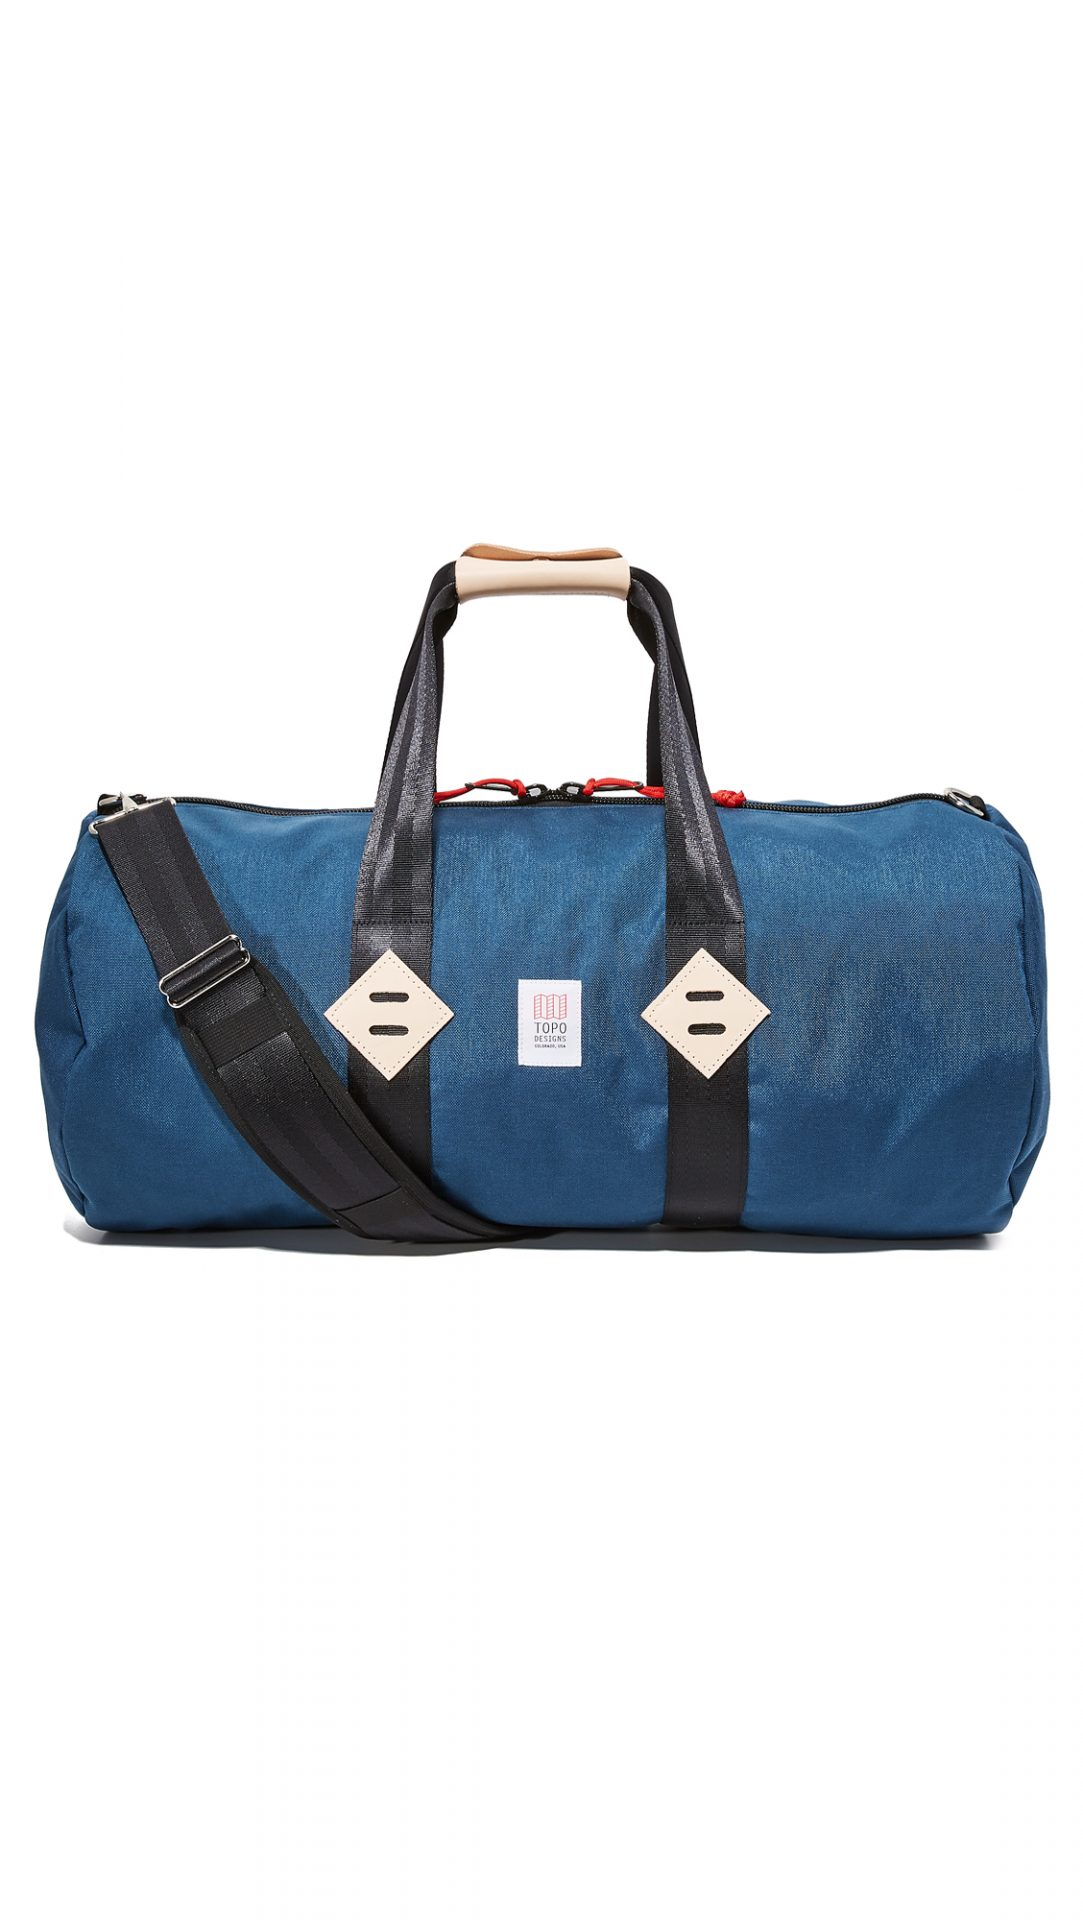 Get a Great Deal on a Topo Designs Classic Duffle Bag 11